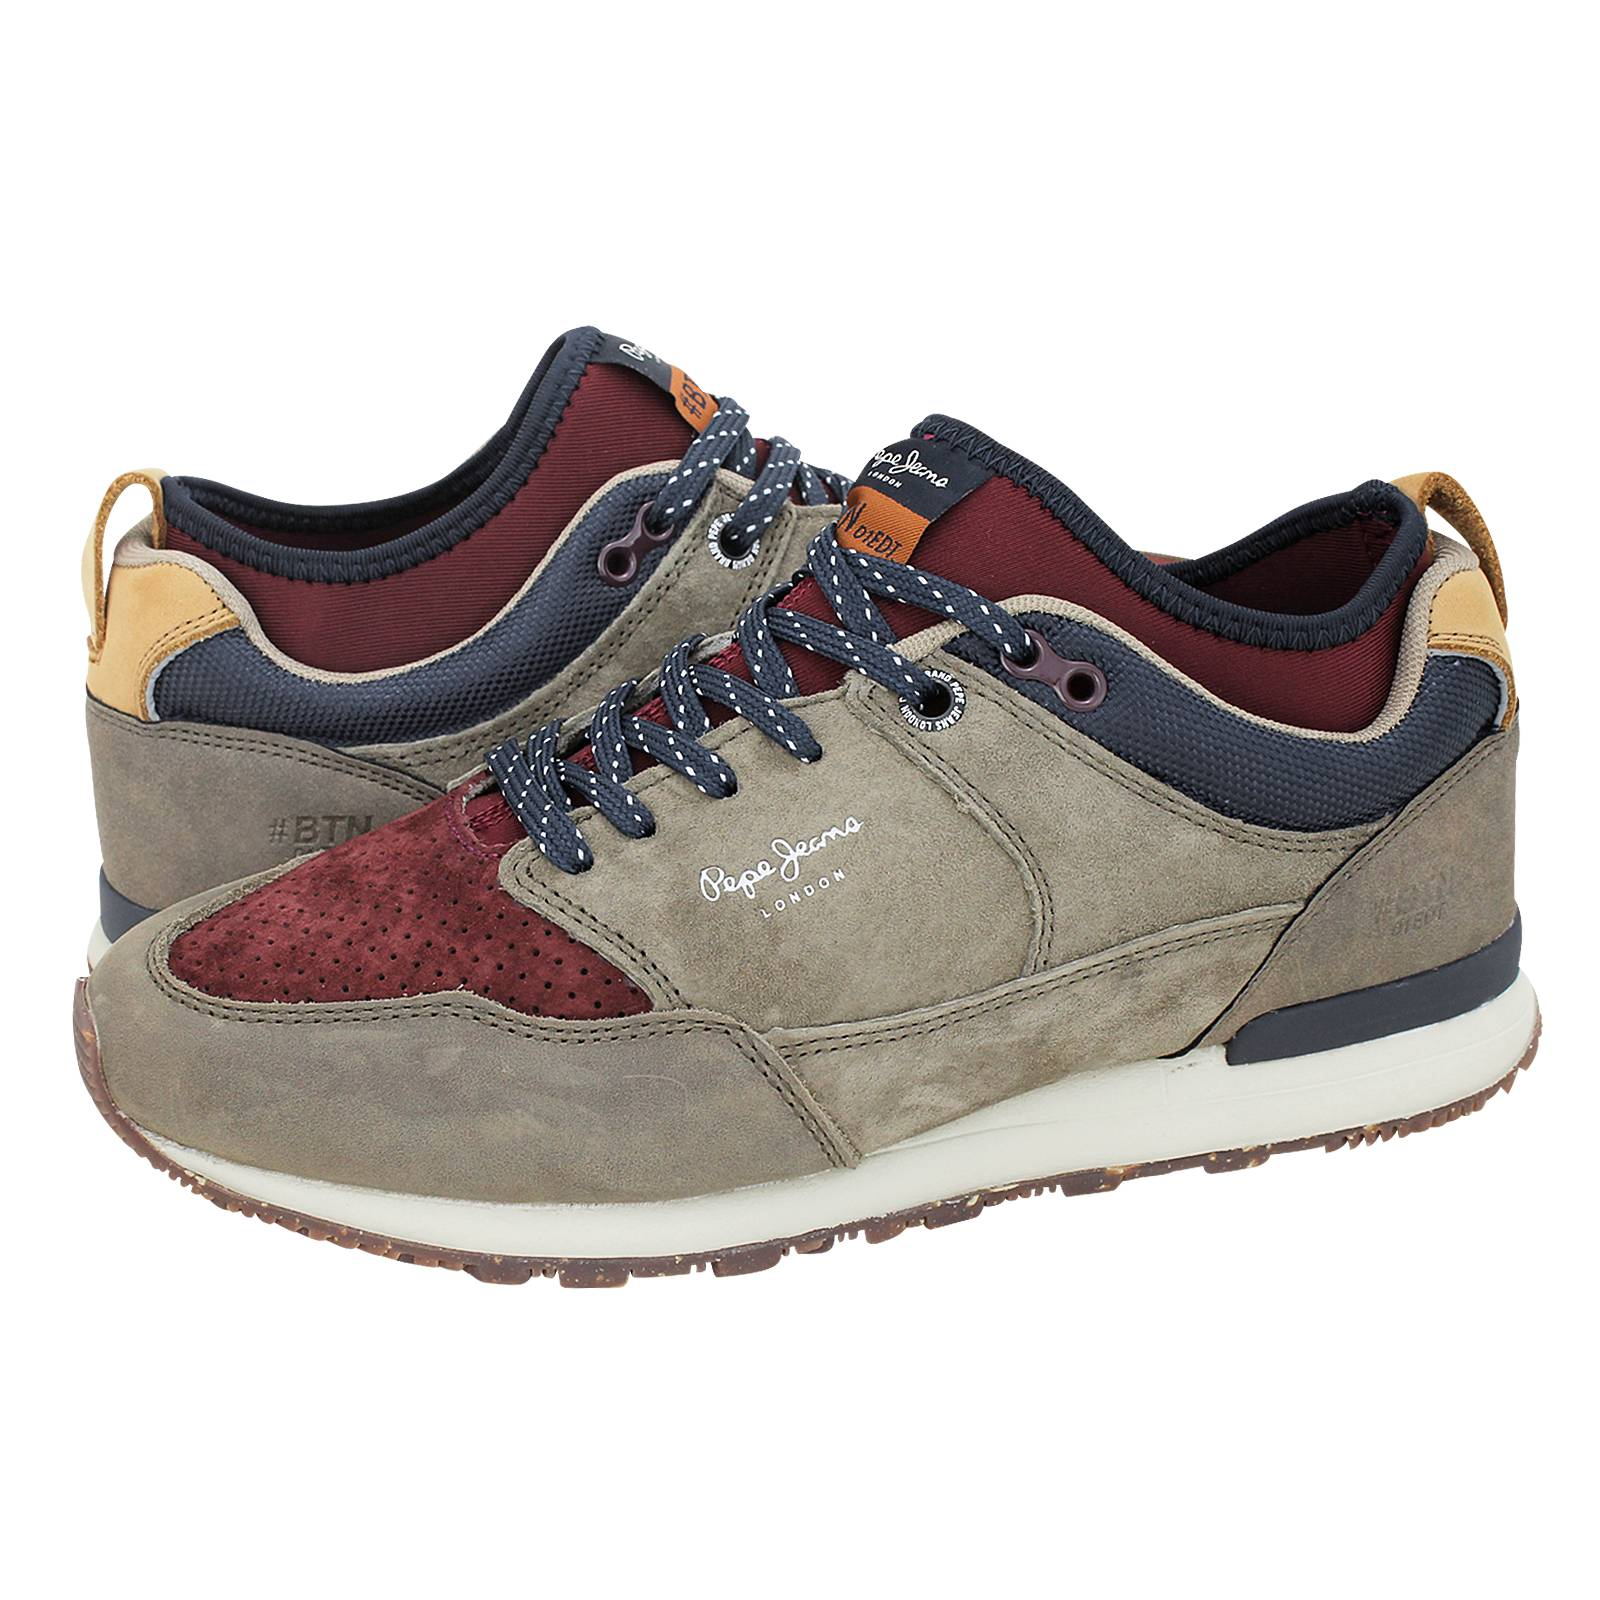 bc29865489b BTN Treck Lth Pack - Pepe Jeans Men s casual shoes made of suede ...